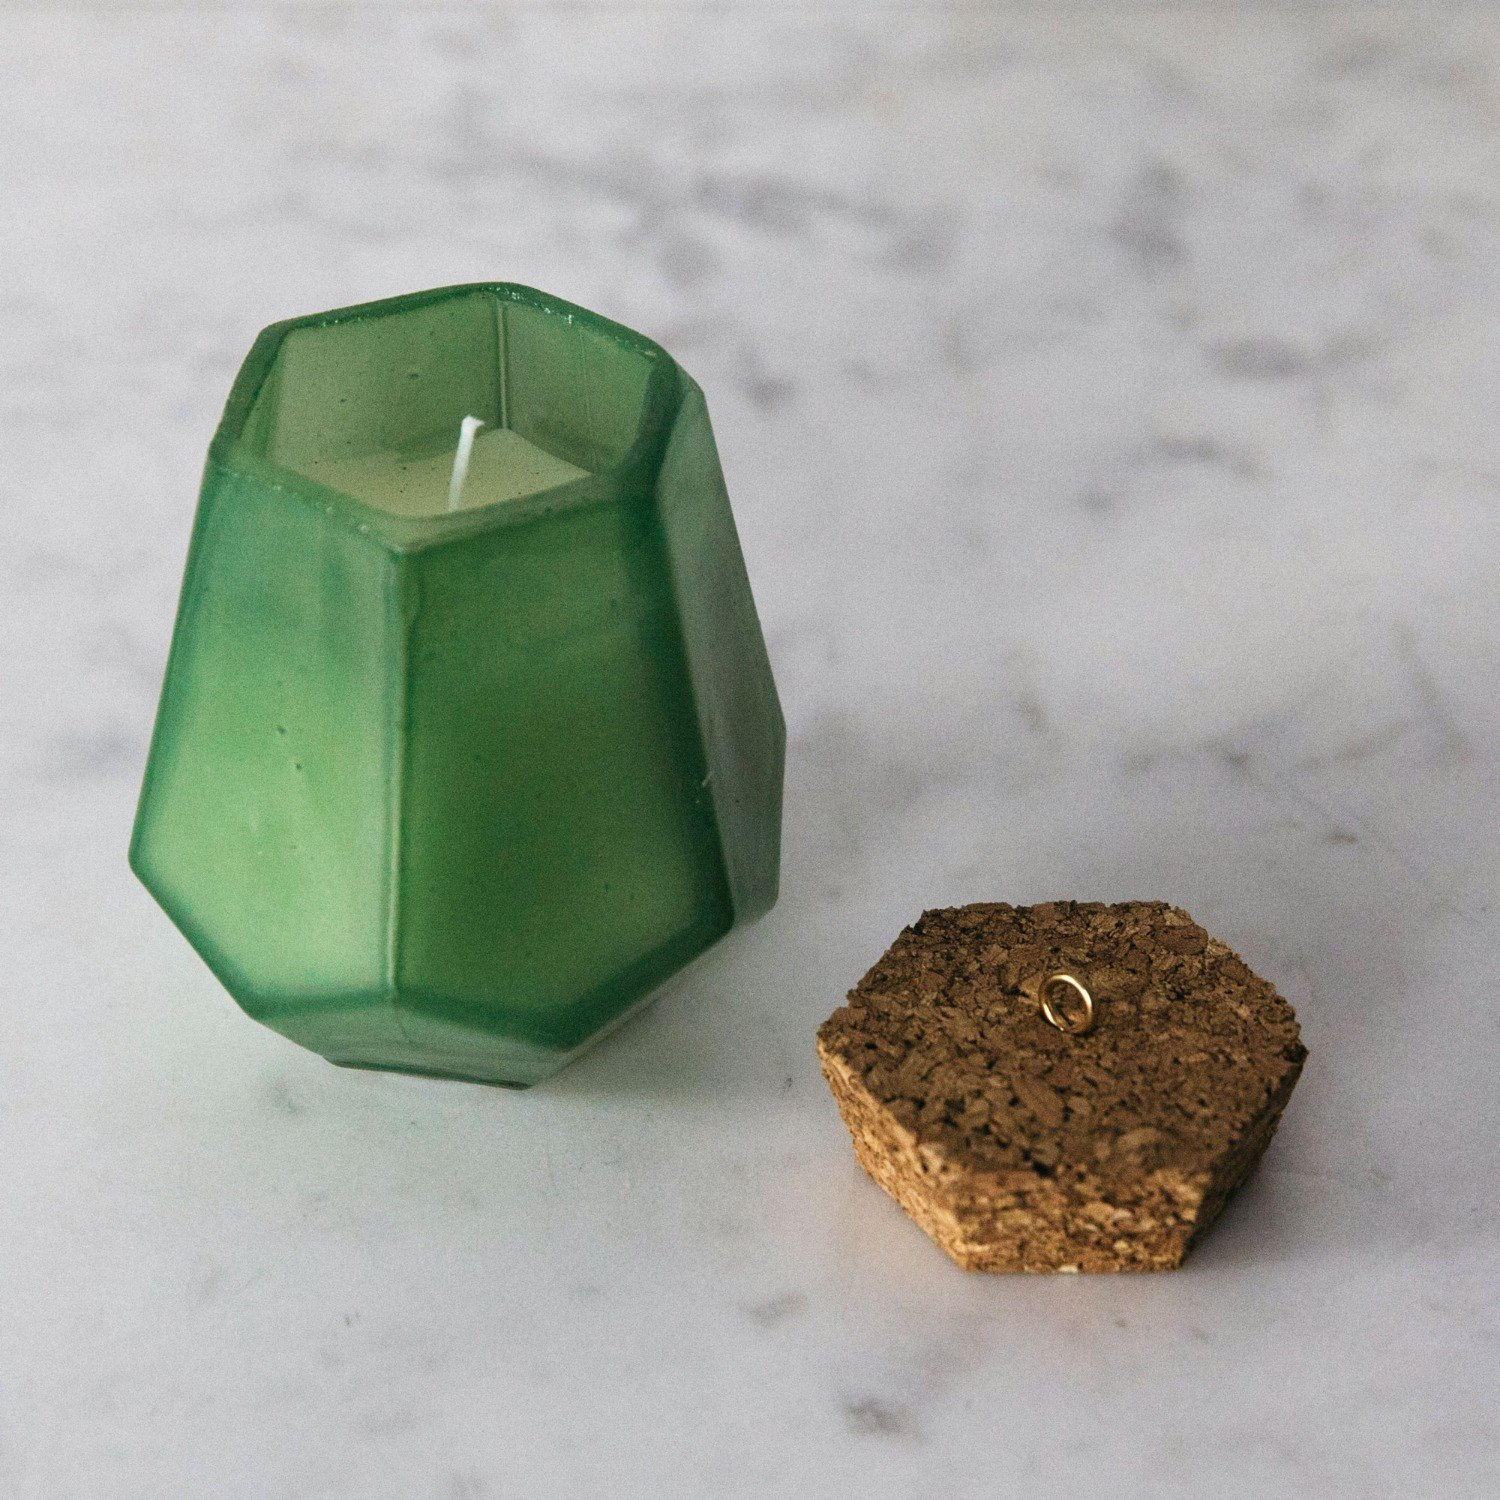 Prism Lucky Clover Candle Graham Green Origami Nut Spring